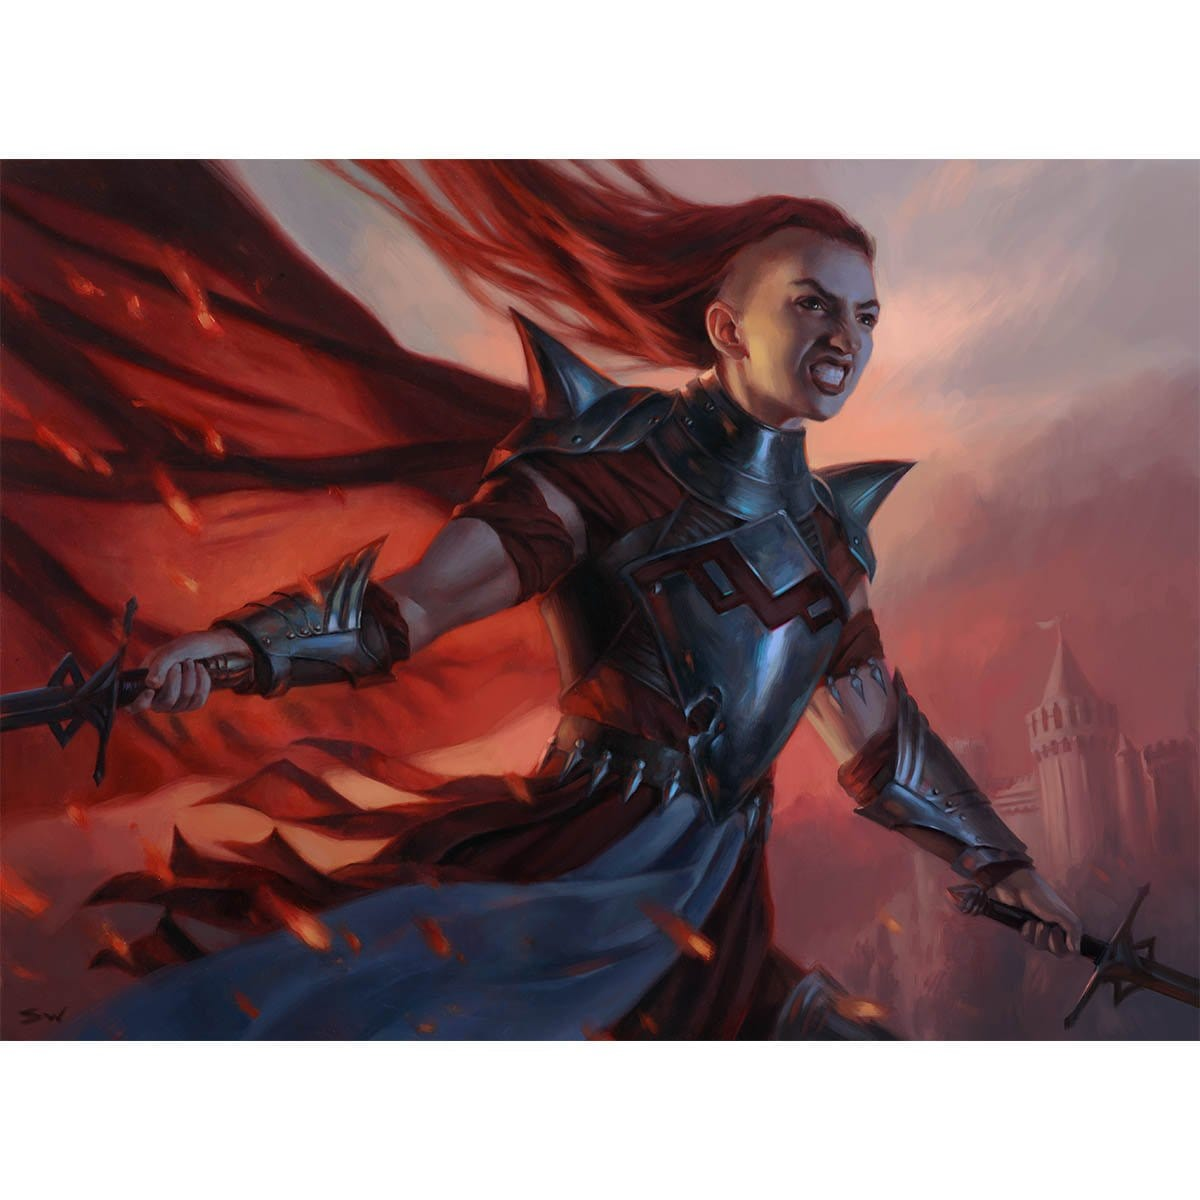 Rowan's Battleguard Print - Print - Original Magic Art - Accessories for Magic the Gathering and other card games